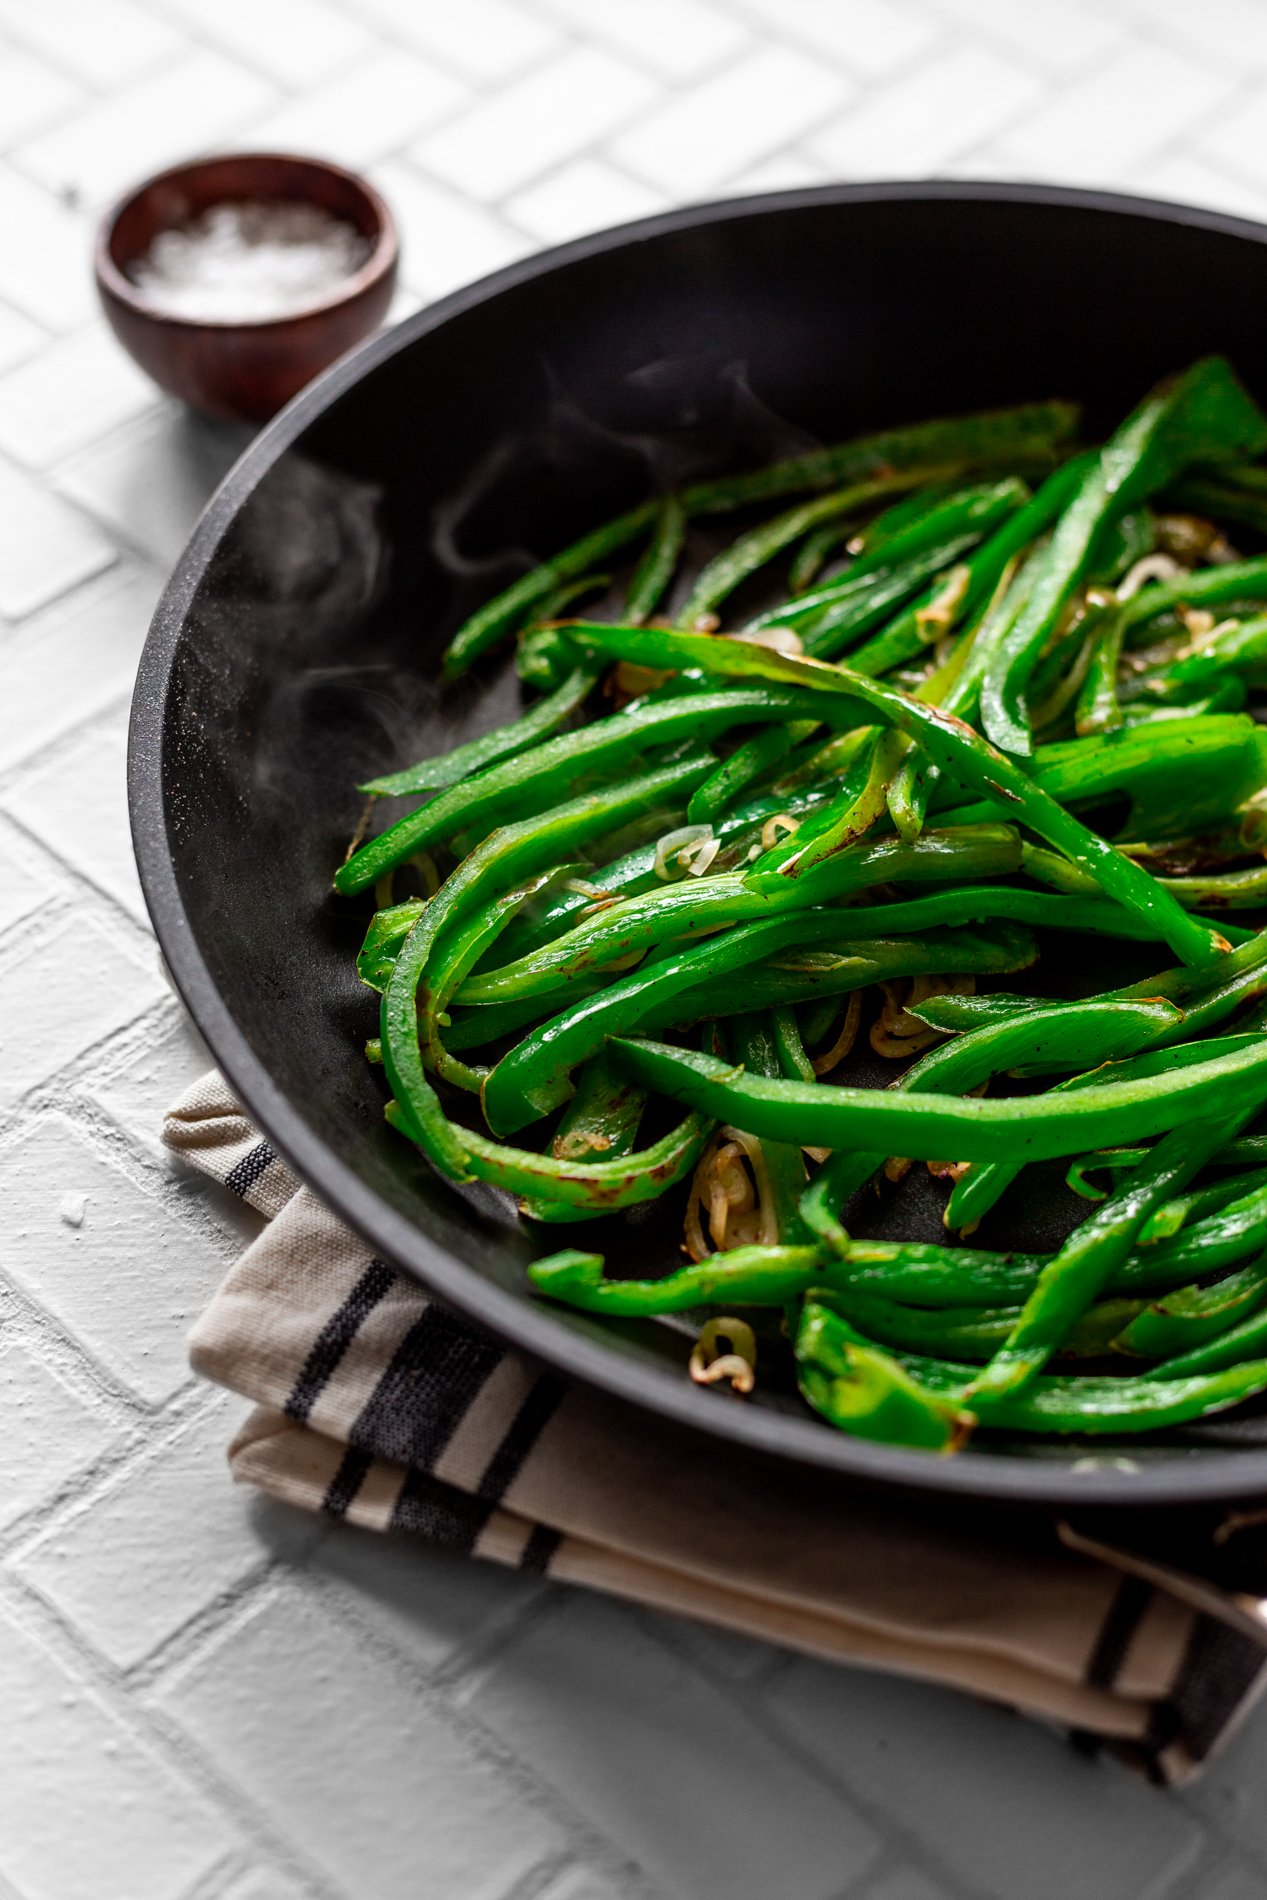 angled view of poblano peppers and shallots sauteed in a skillet, with steam swirling off the peppers